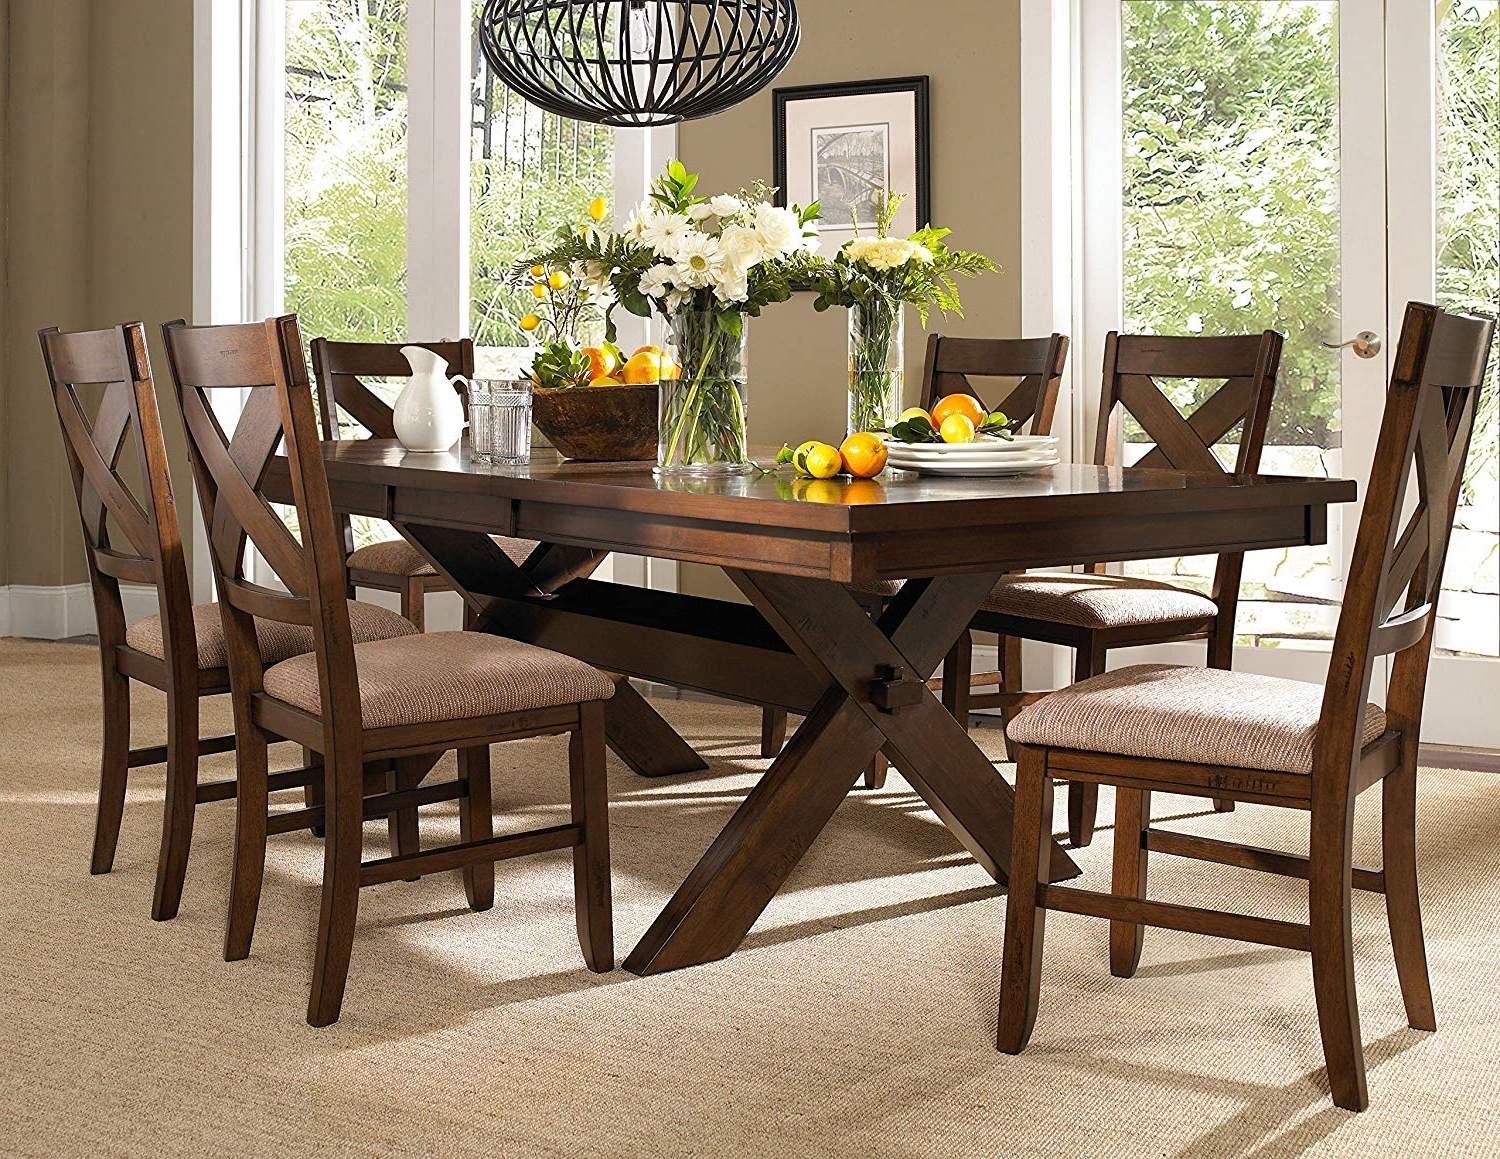 Newest Amazon – Powell 713 417M2 7 Piece Wooden Kraven Dining Set With Wood Dining Tables And 6 Chairs (Gallery 9 of 25)